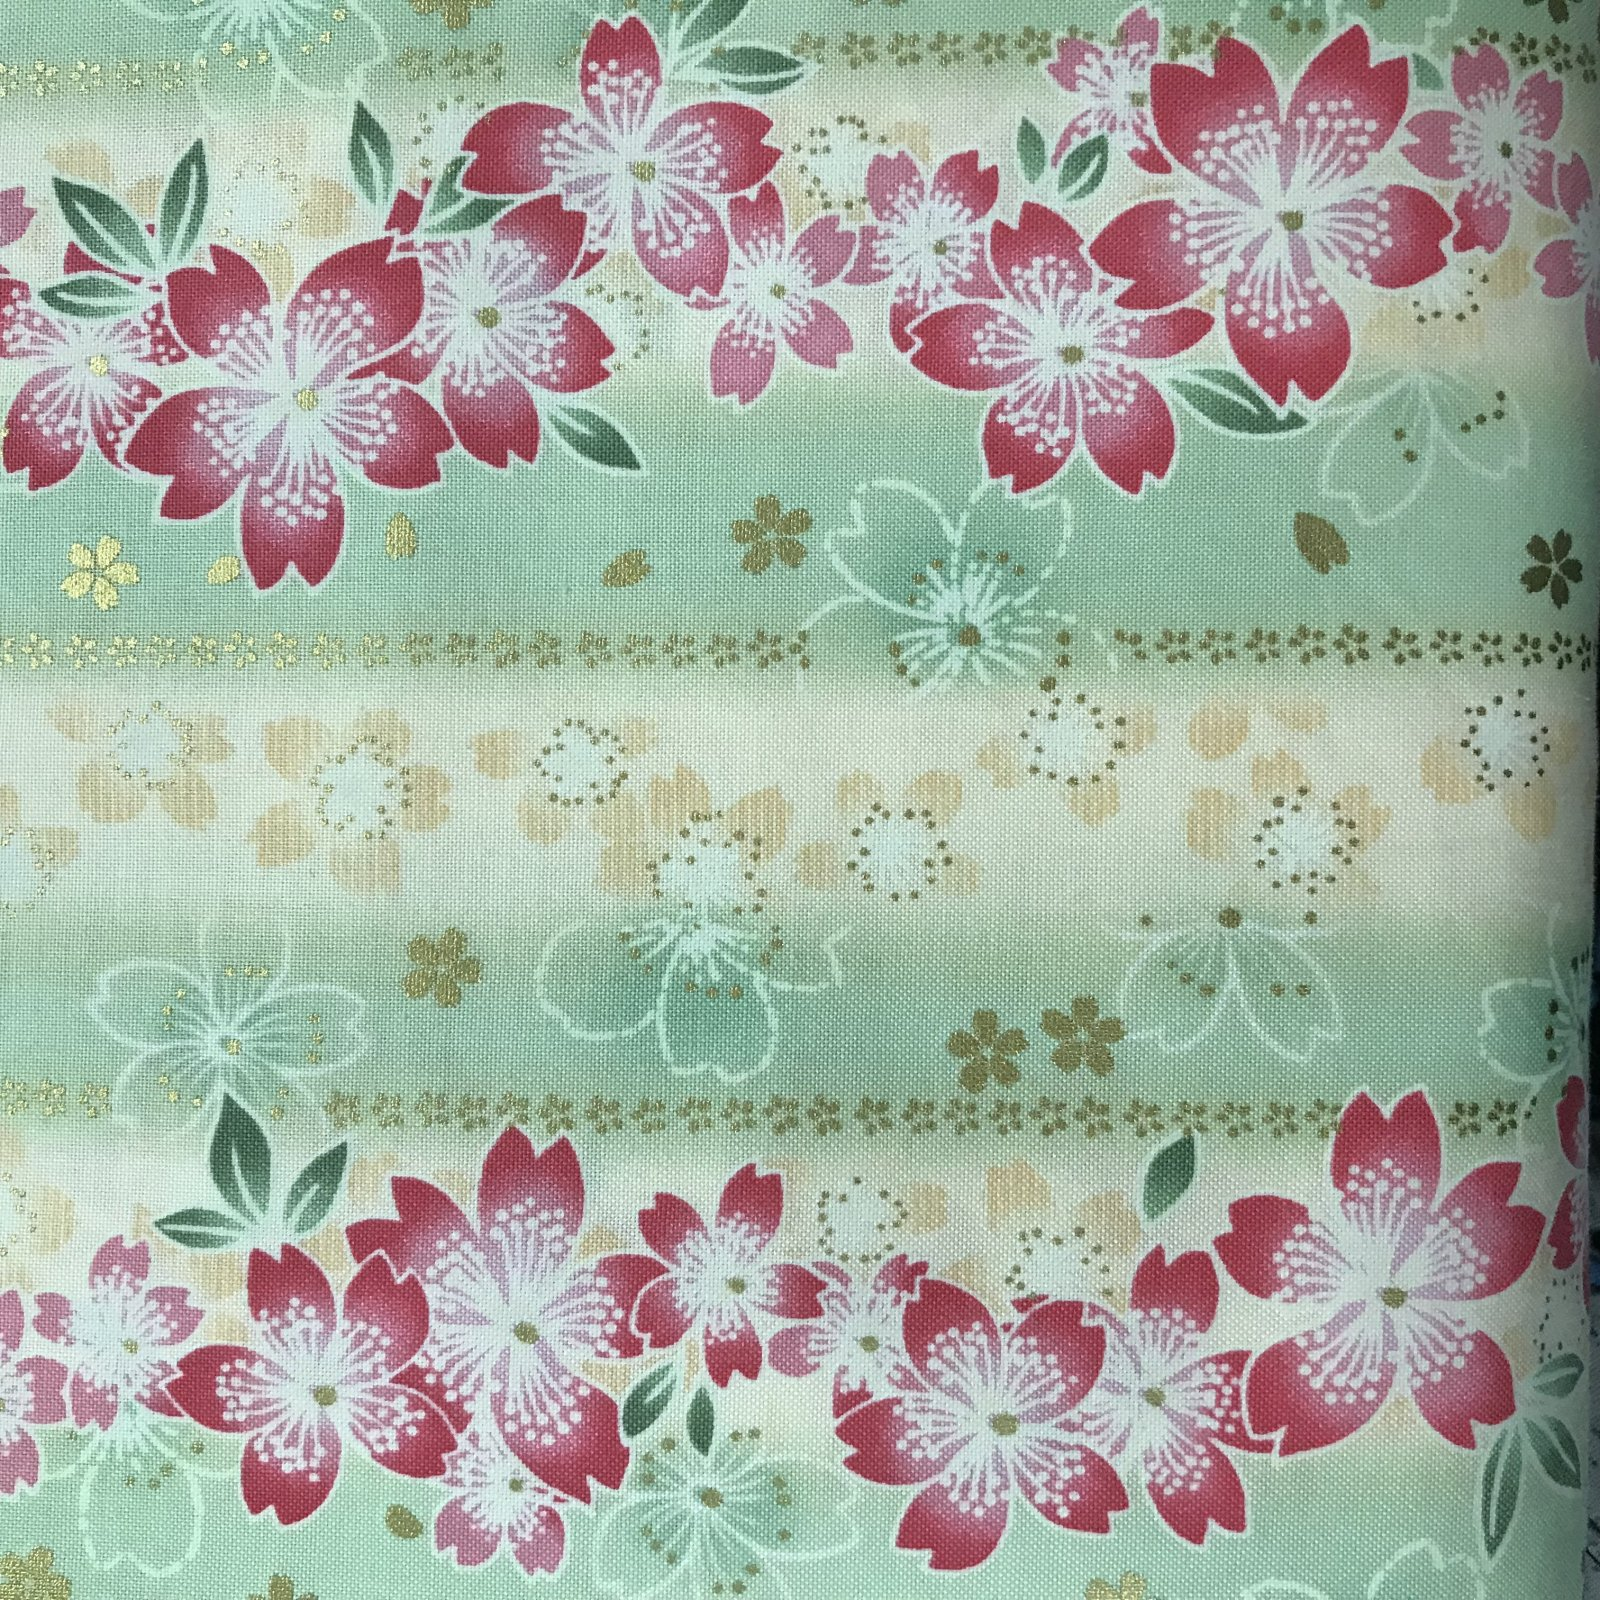 Hime by Quilt Gate QUGHR 3930 14A